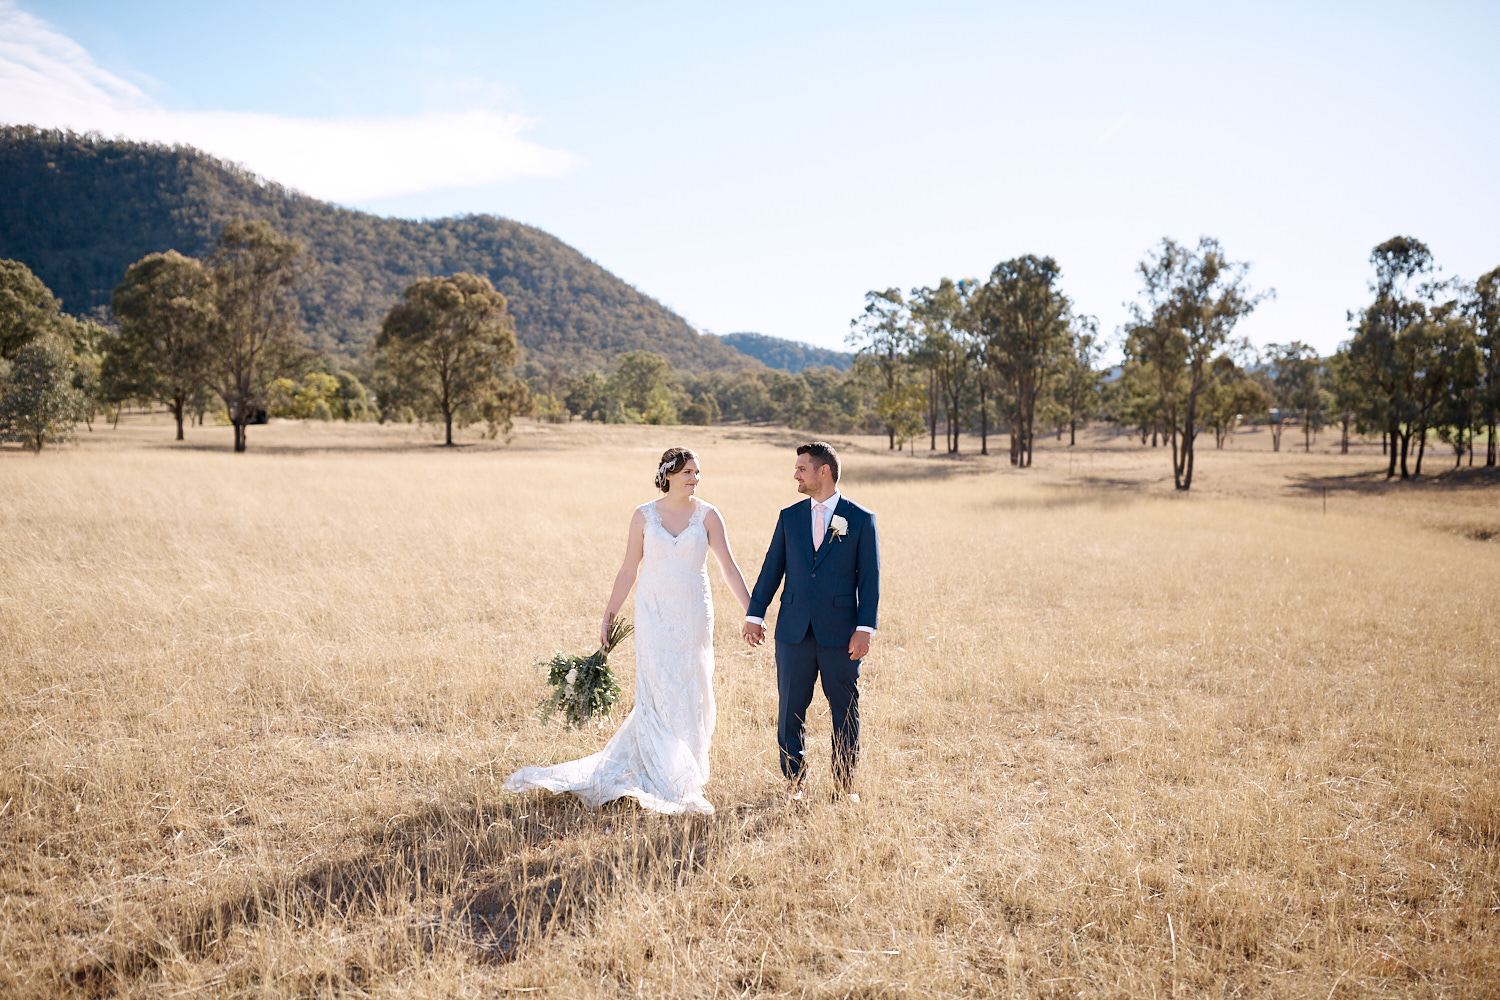 Bride and groom holding hands in field at Adams Peak in Hunter Valley by Blue Mountains wedding photographer Joshua Witheford